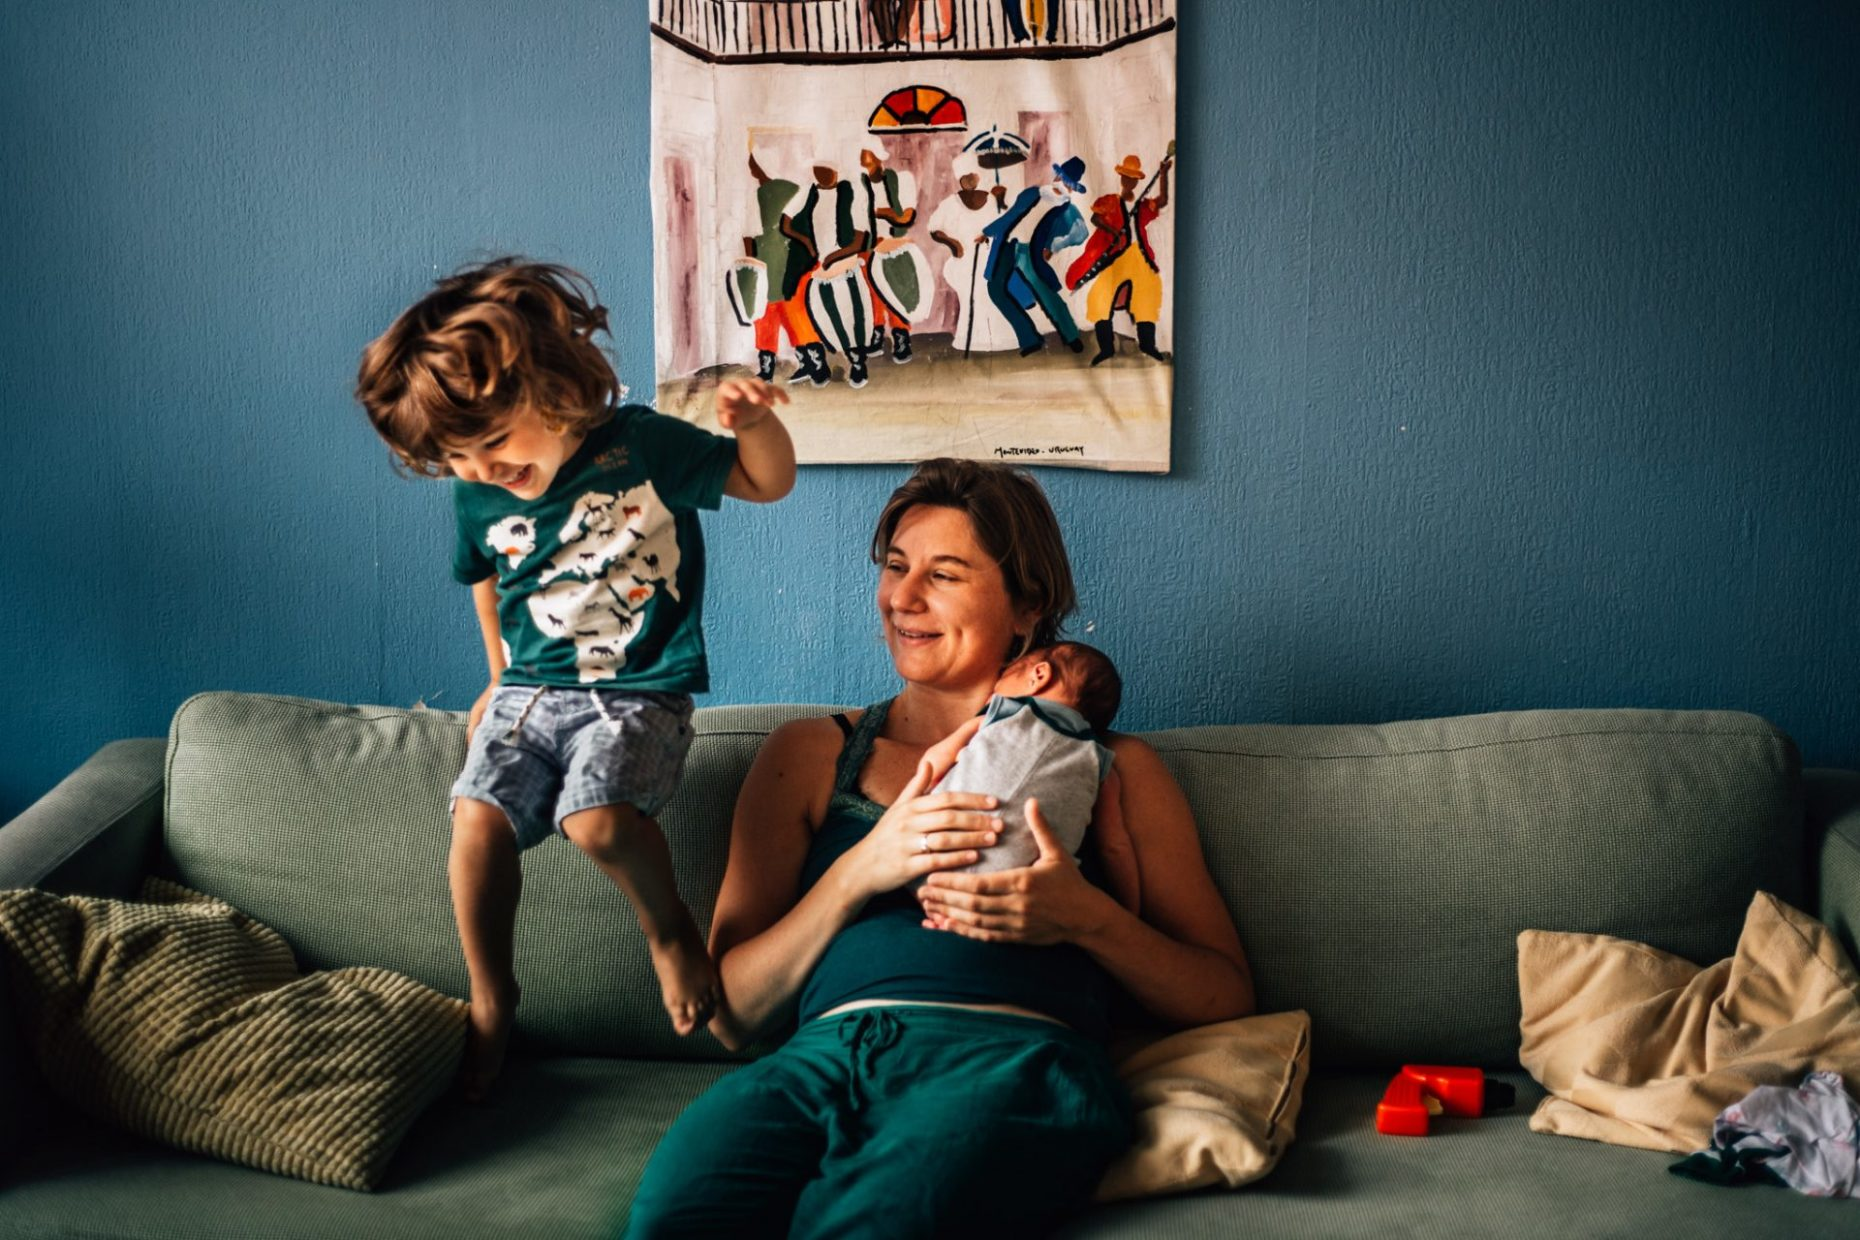 Toddler jumping on the couch where his mom is sitting holding her newborn baby. Newborn photography Amsterdam with siblings